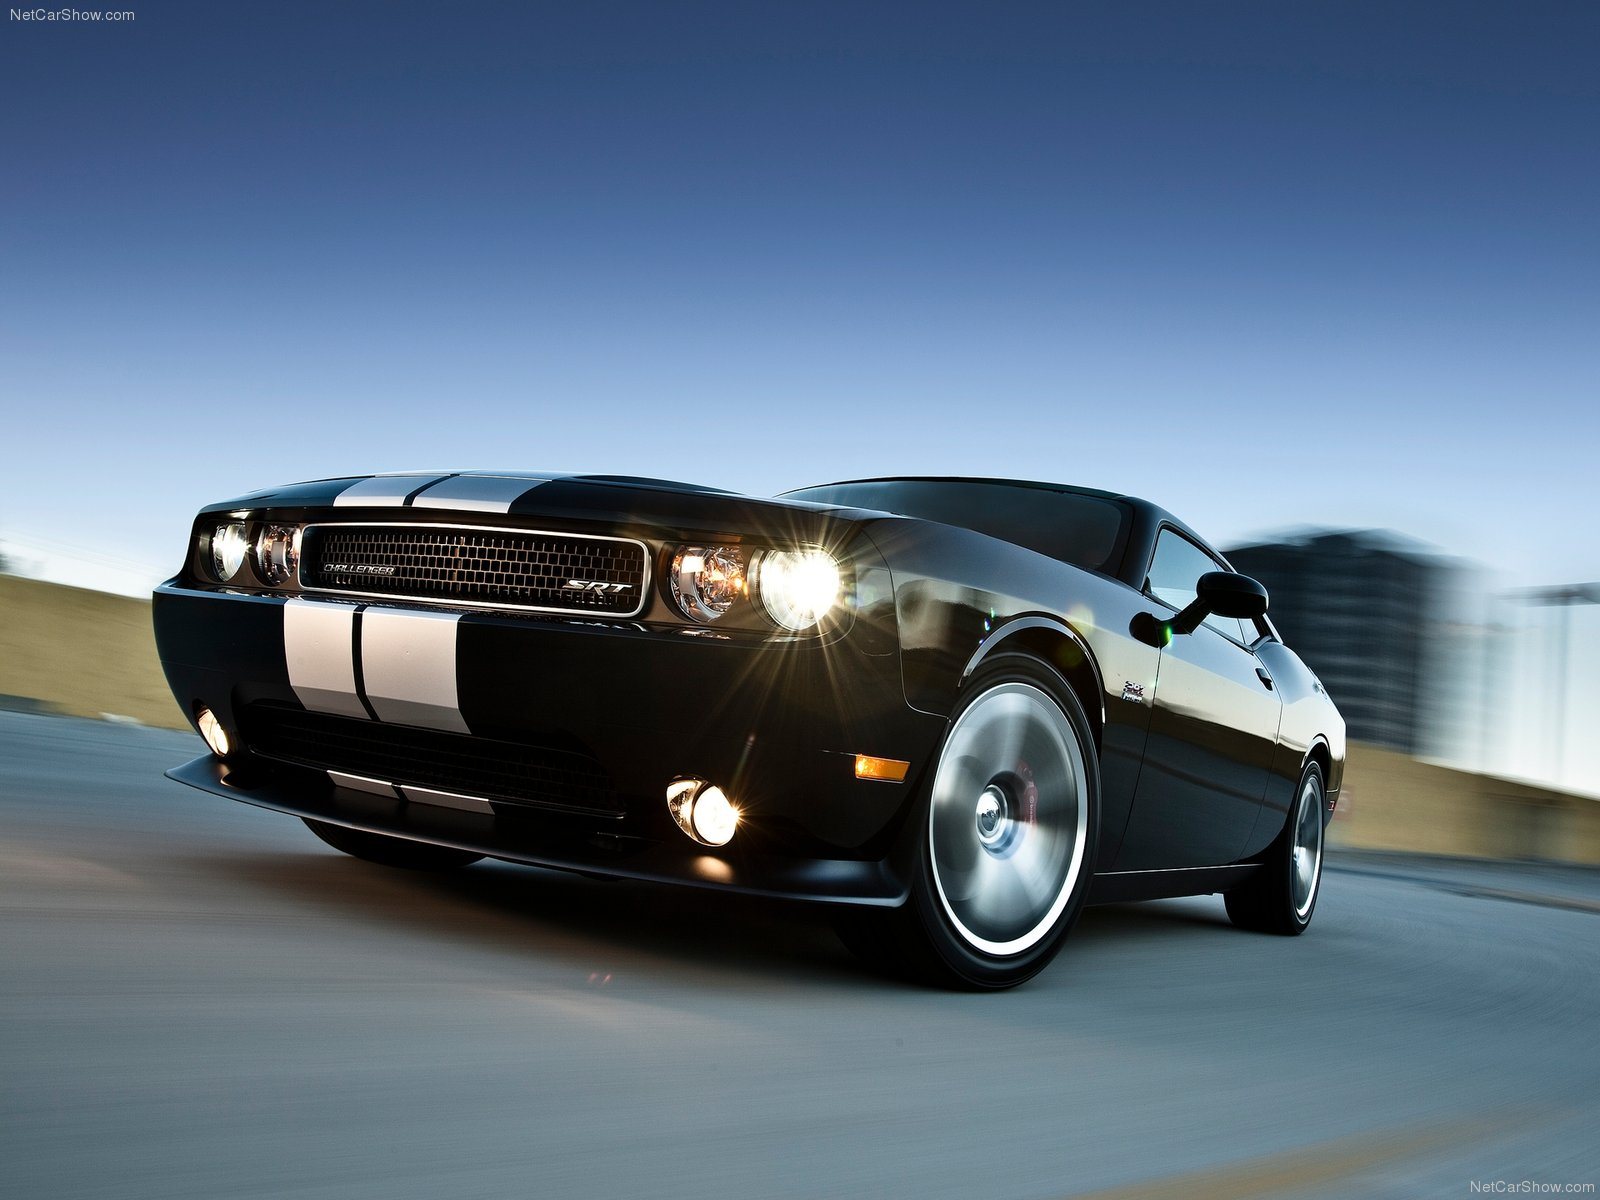 Dodge Challenger SRT8 392 photo 83746